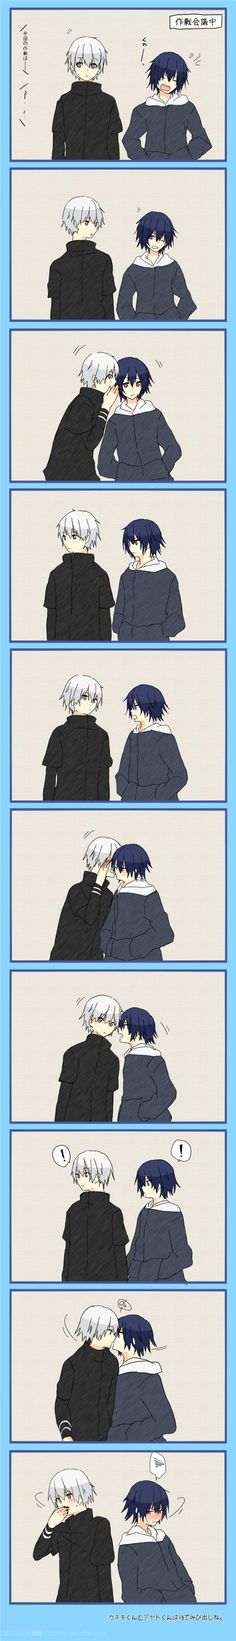 Kaneki x Ayato, don't really ship it that much but this is just so cute